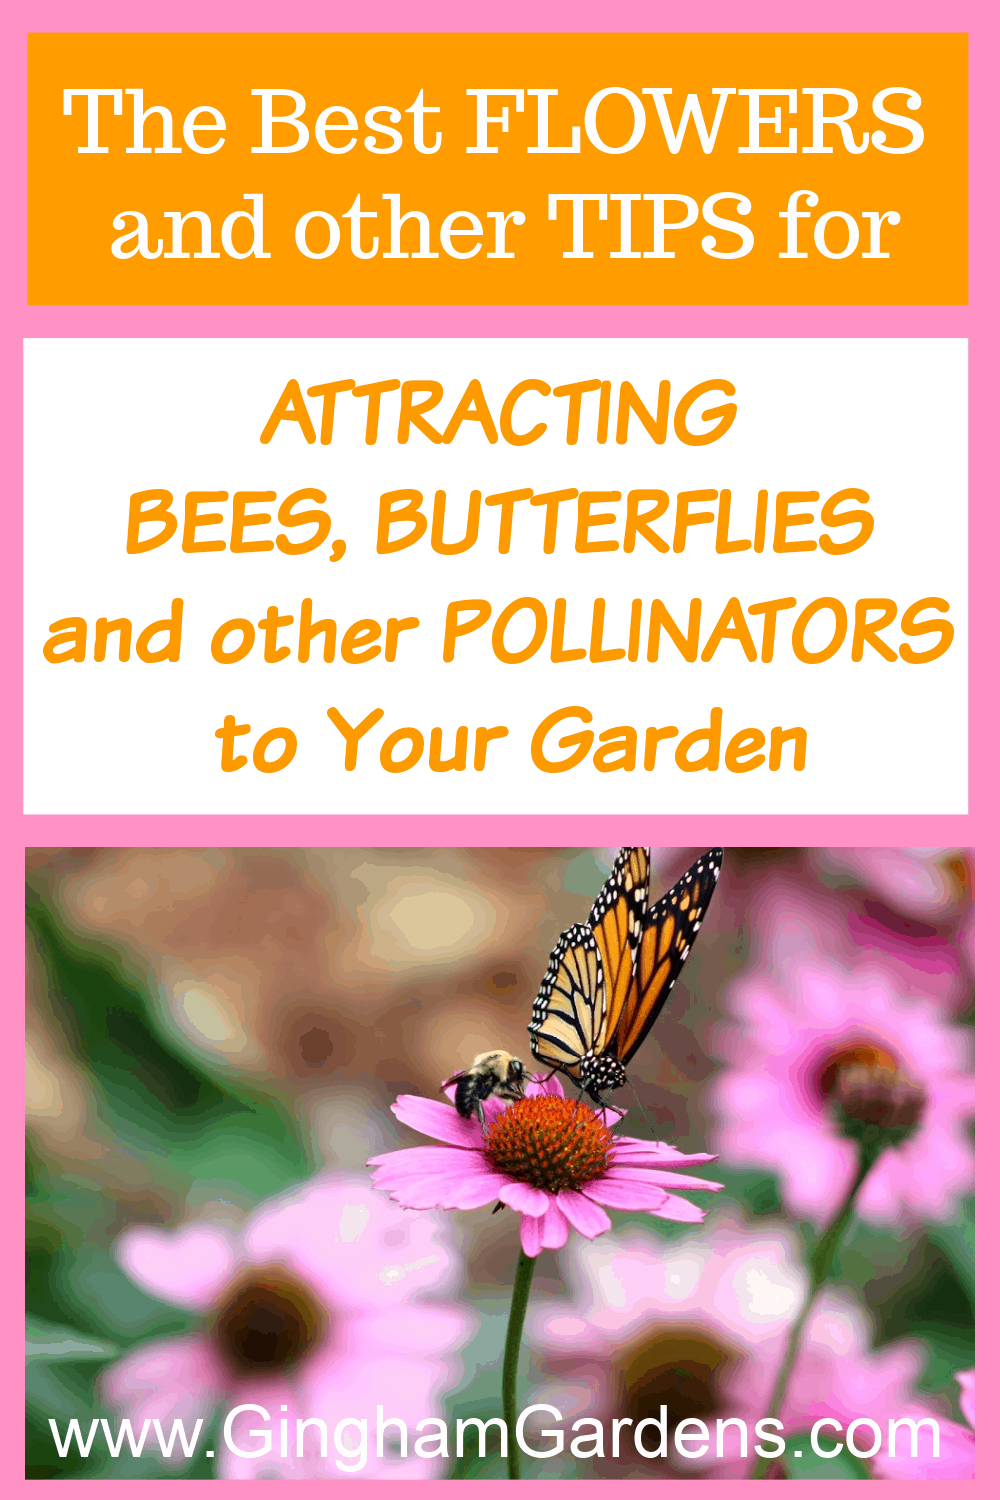 Image of a butterfly on a flower with text overlay - The Best Flowers and tips for attracting butterflies and other pollinators to your garden